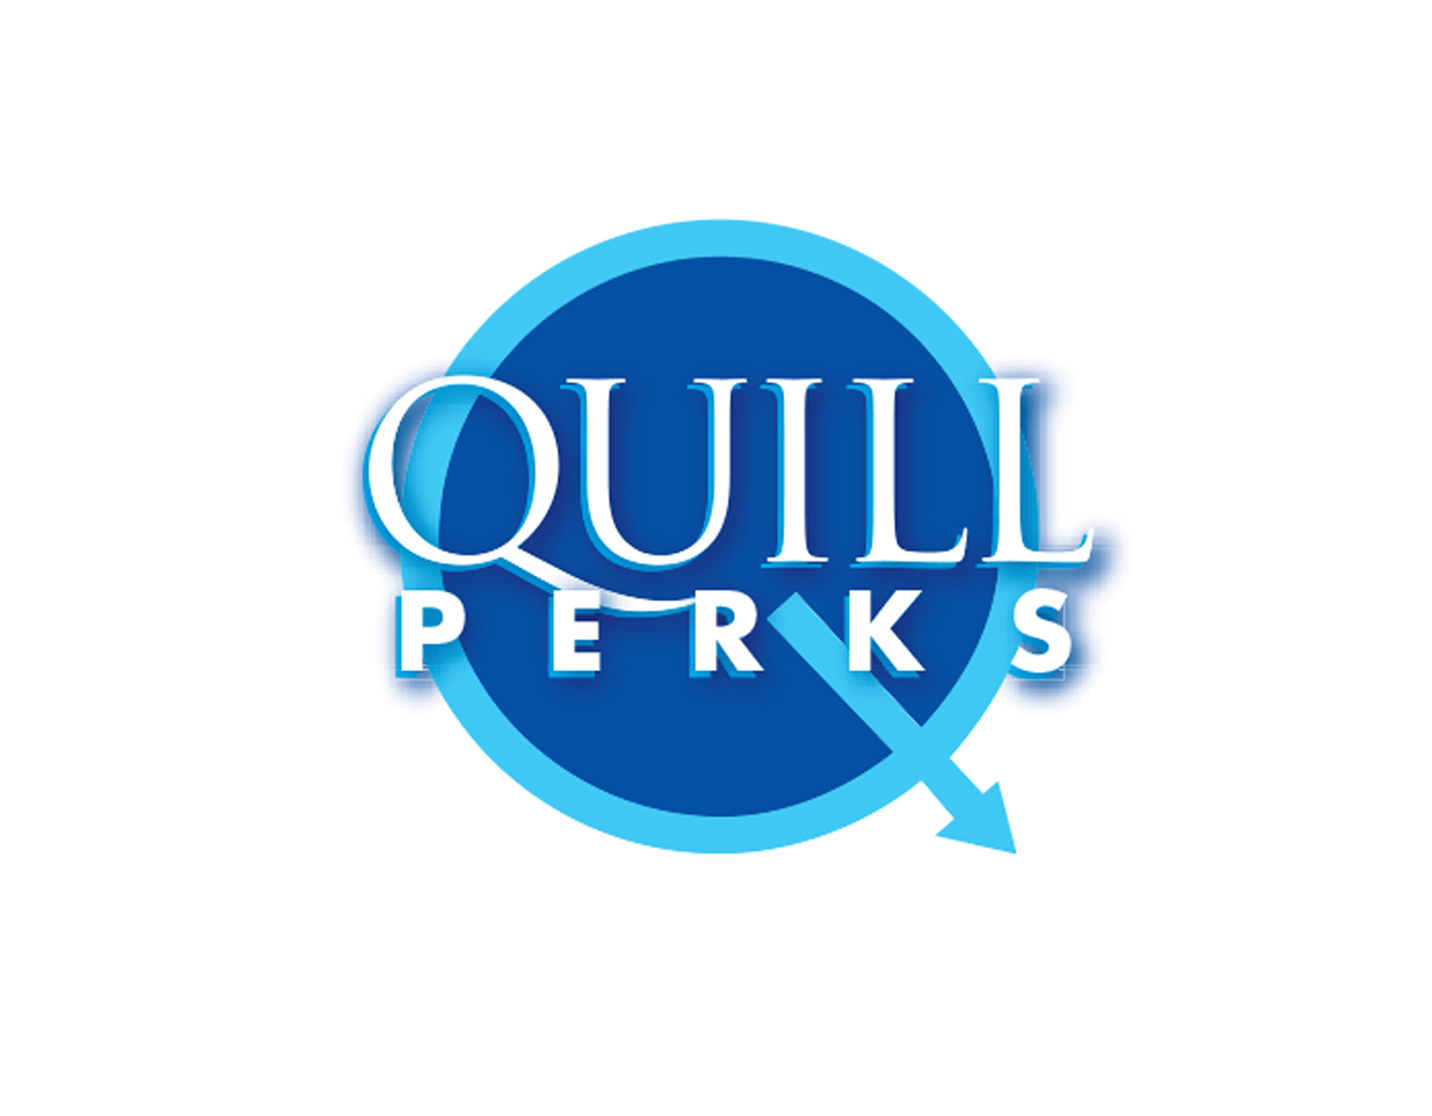 Quill Perks